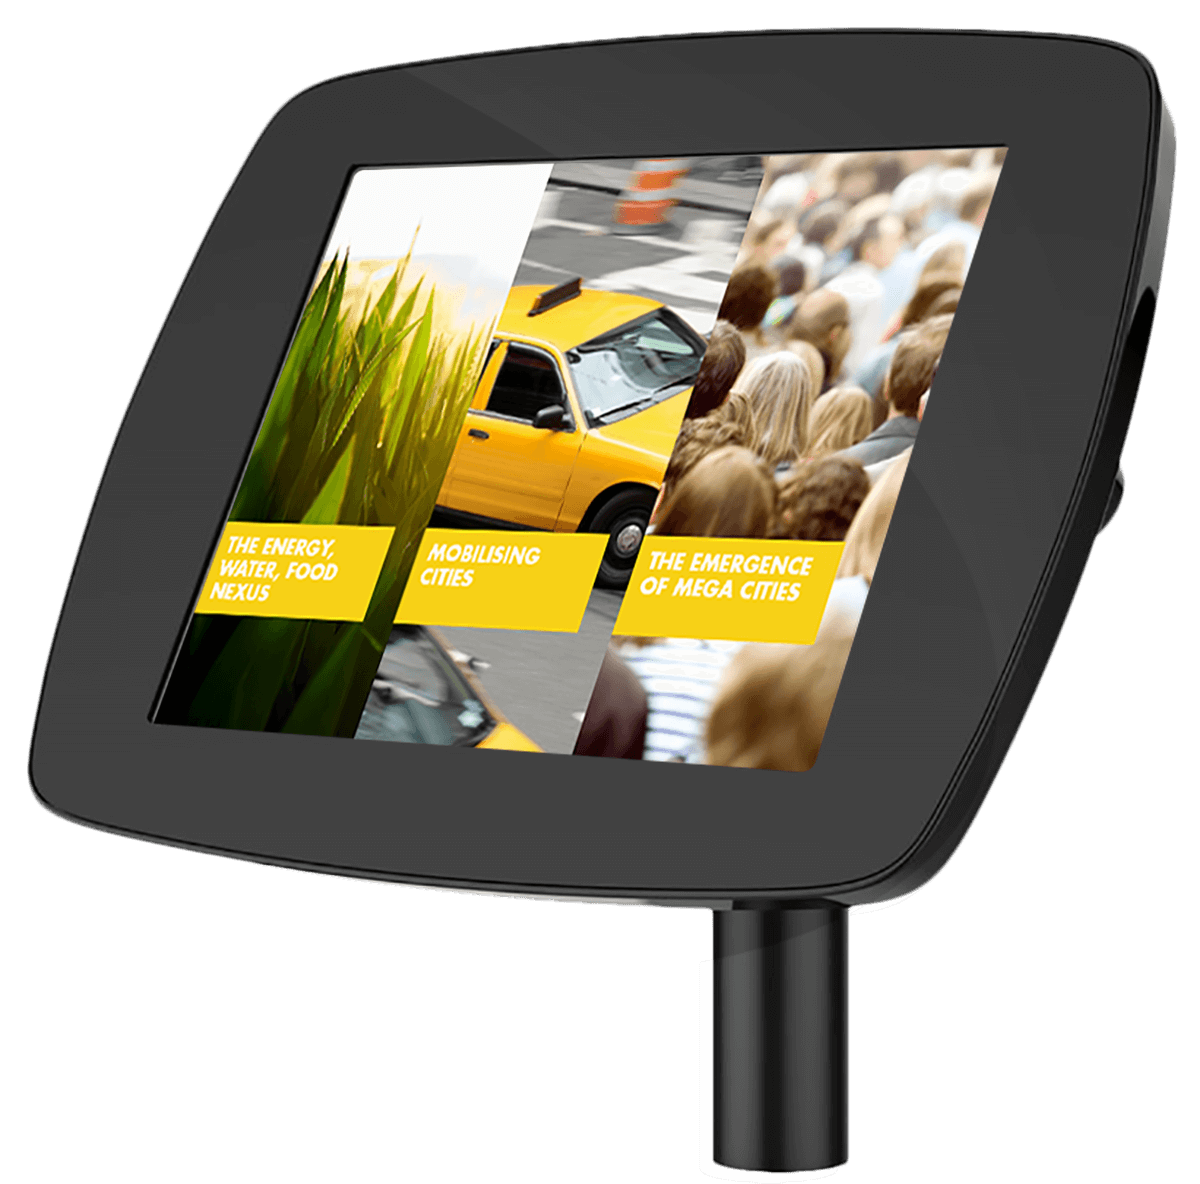 iPad Kiosk Application Development | Kiosk Design Agency